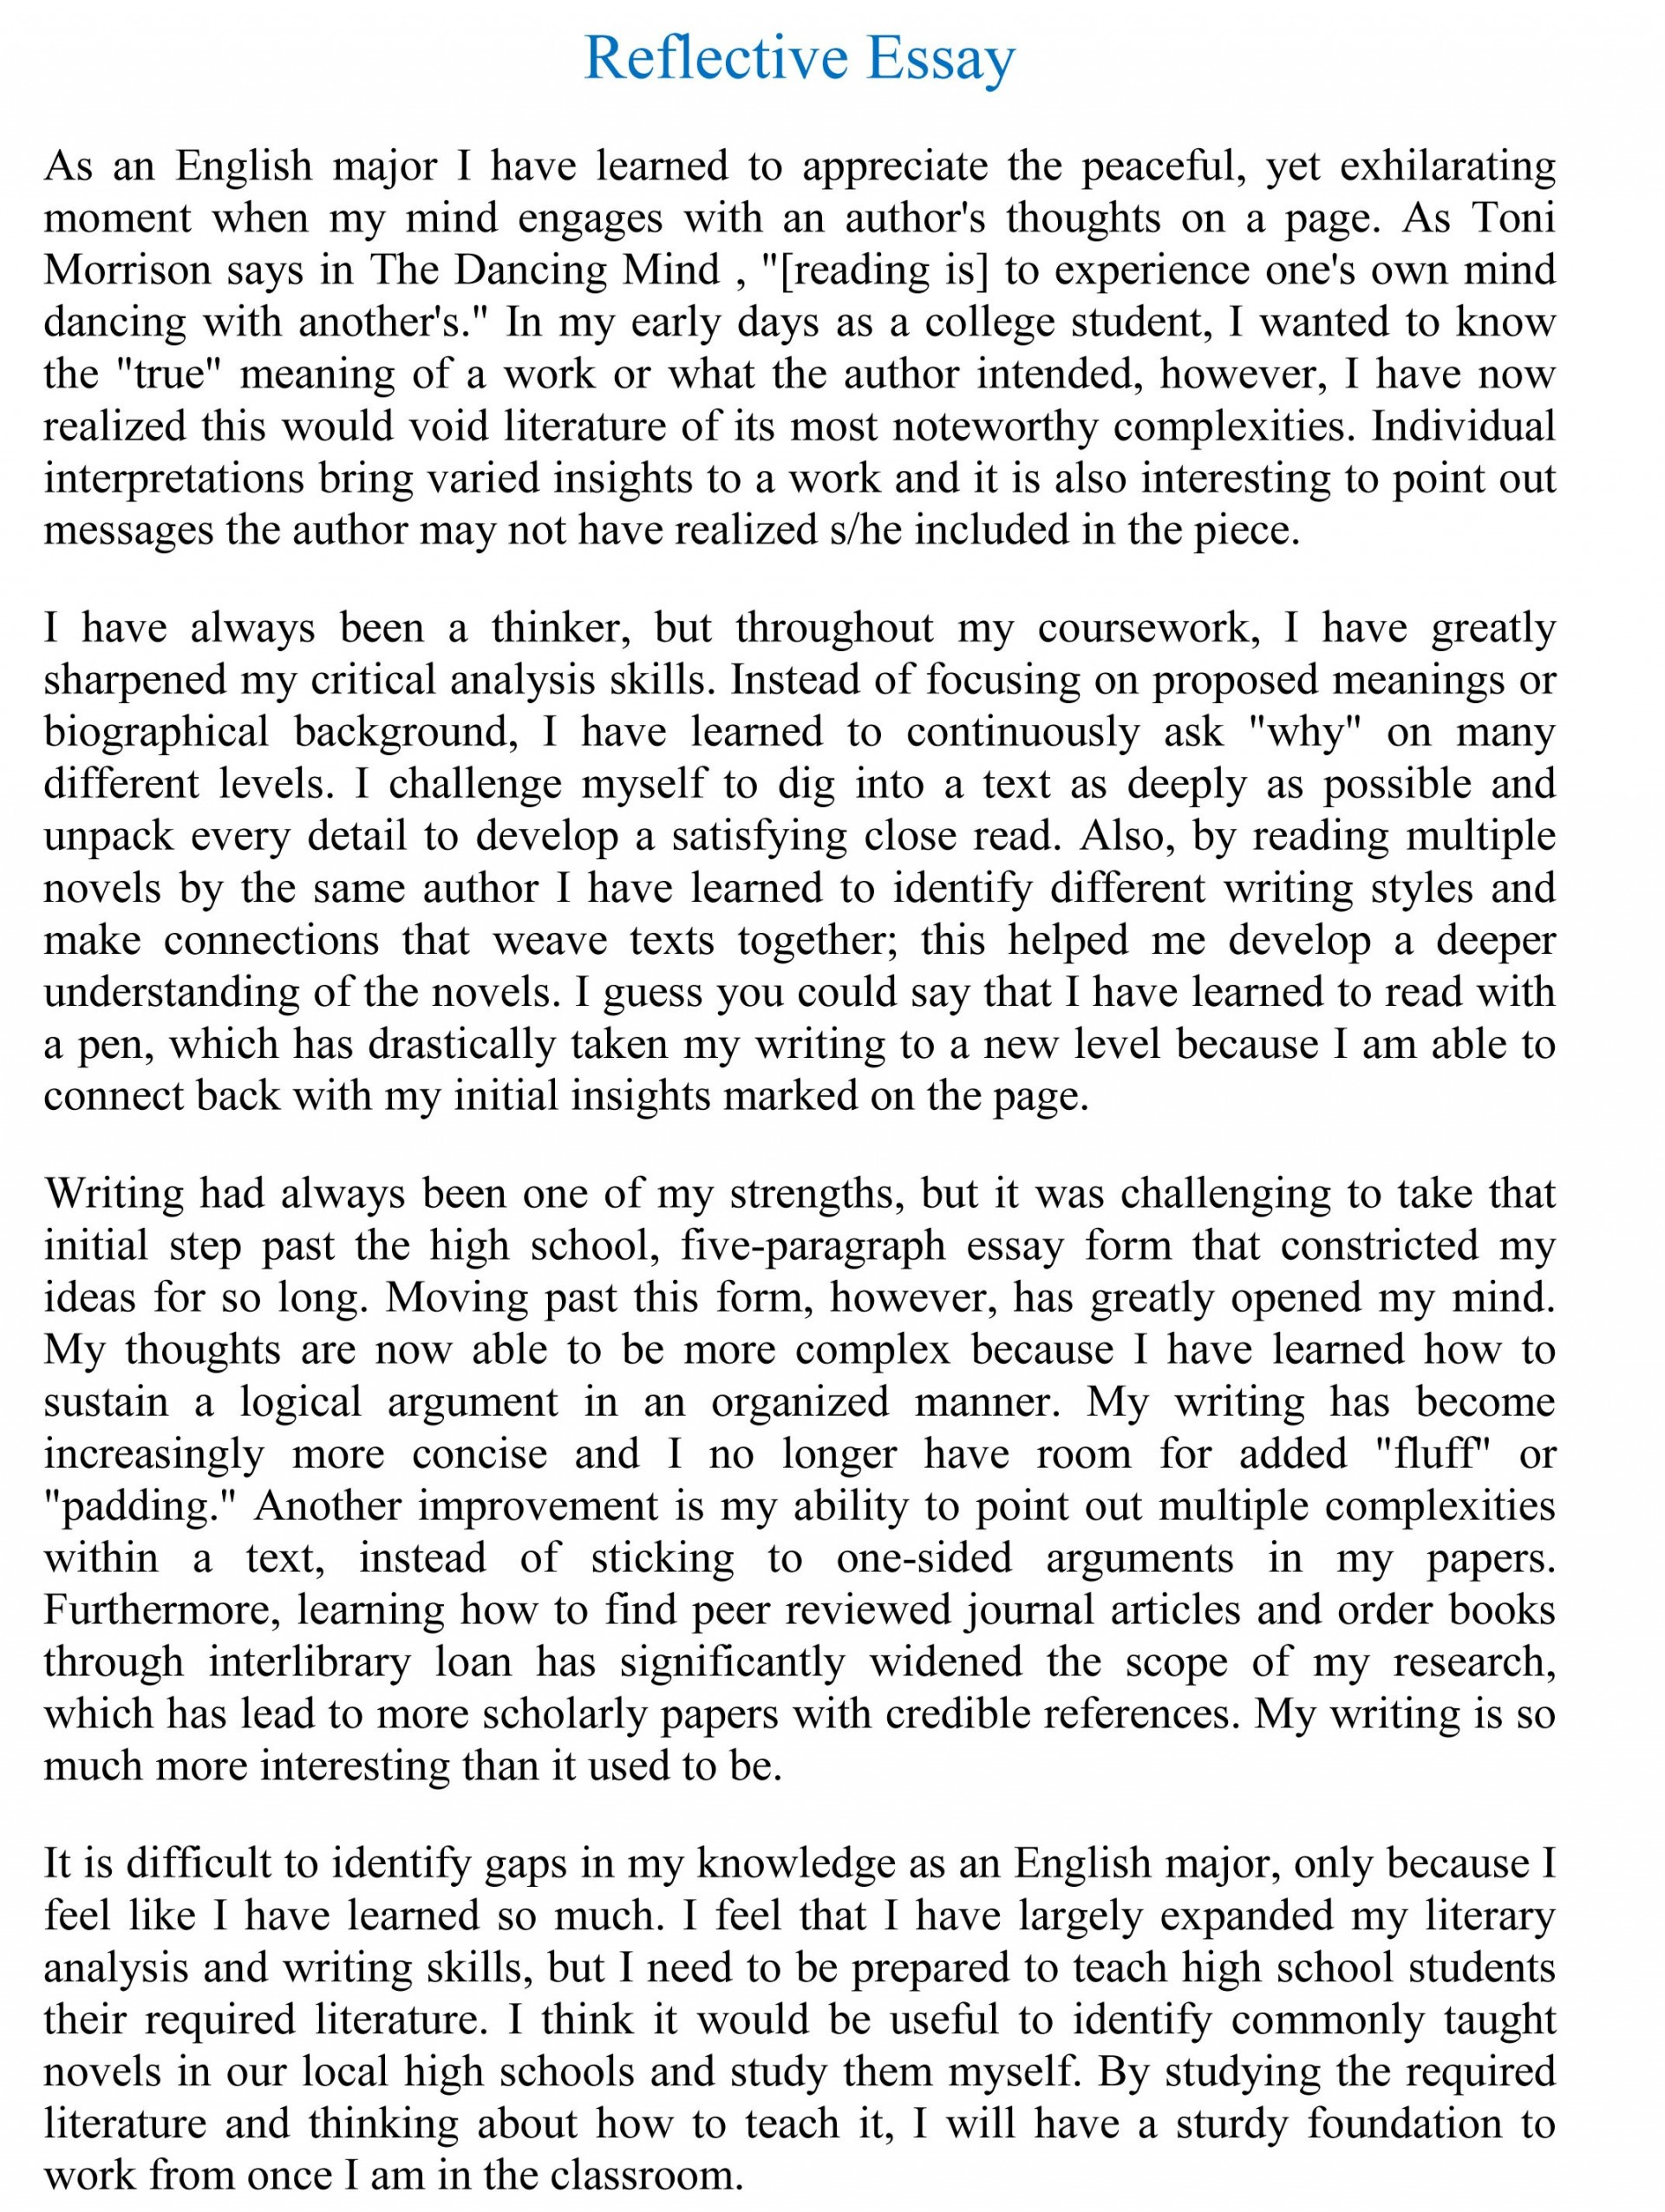 004 Reflective Essay Sample How To Start Introduction Surprising A Do You An Write For 1920